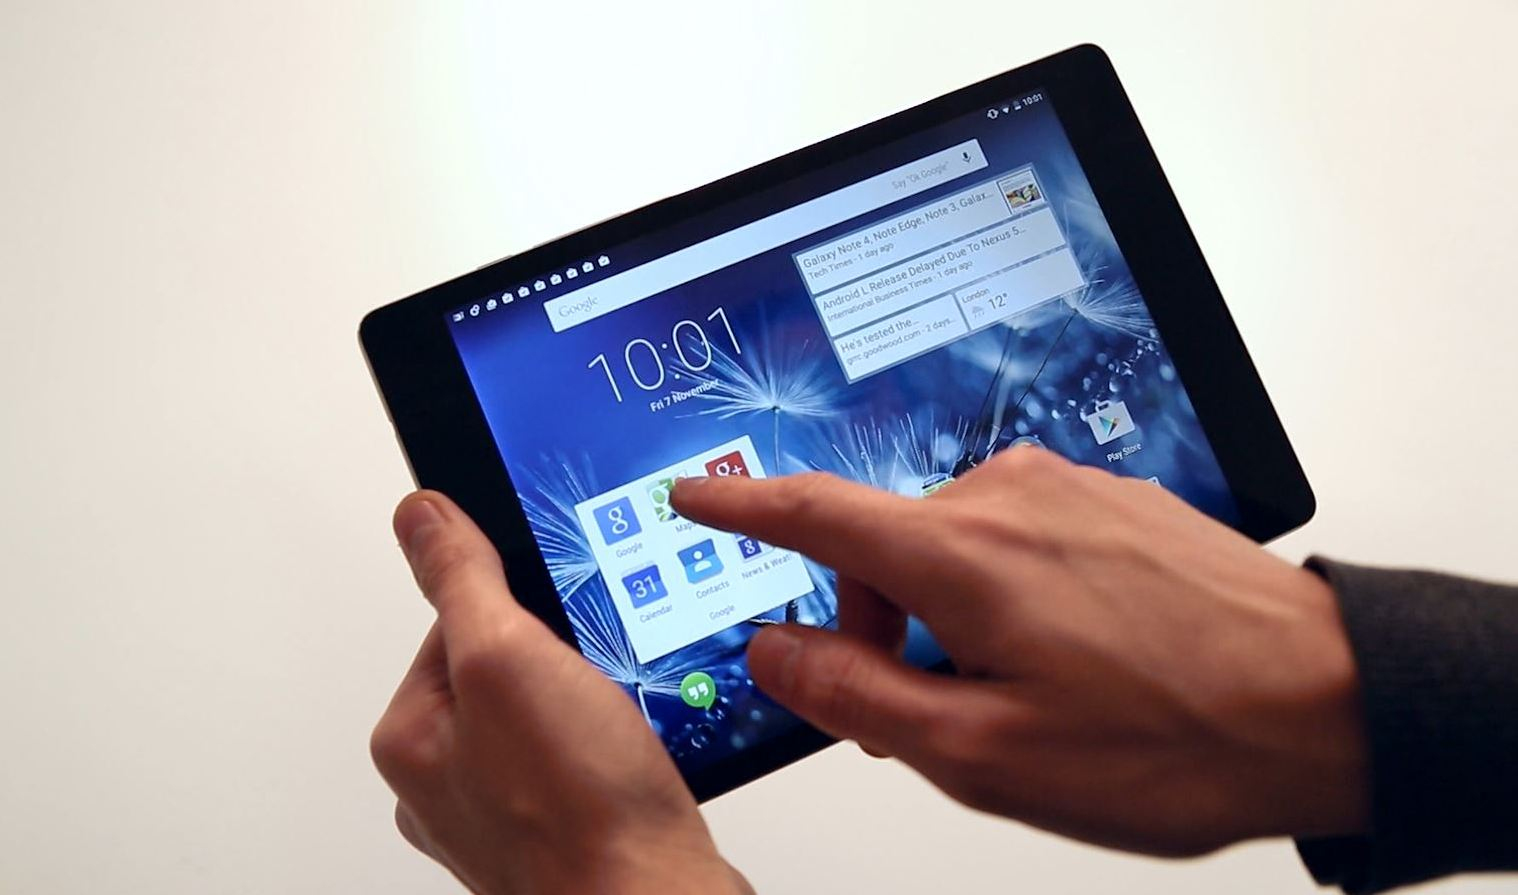 Google Nexus 9 Review - Meet The First Android 5 Tablet